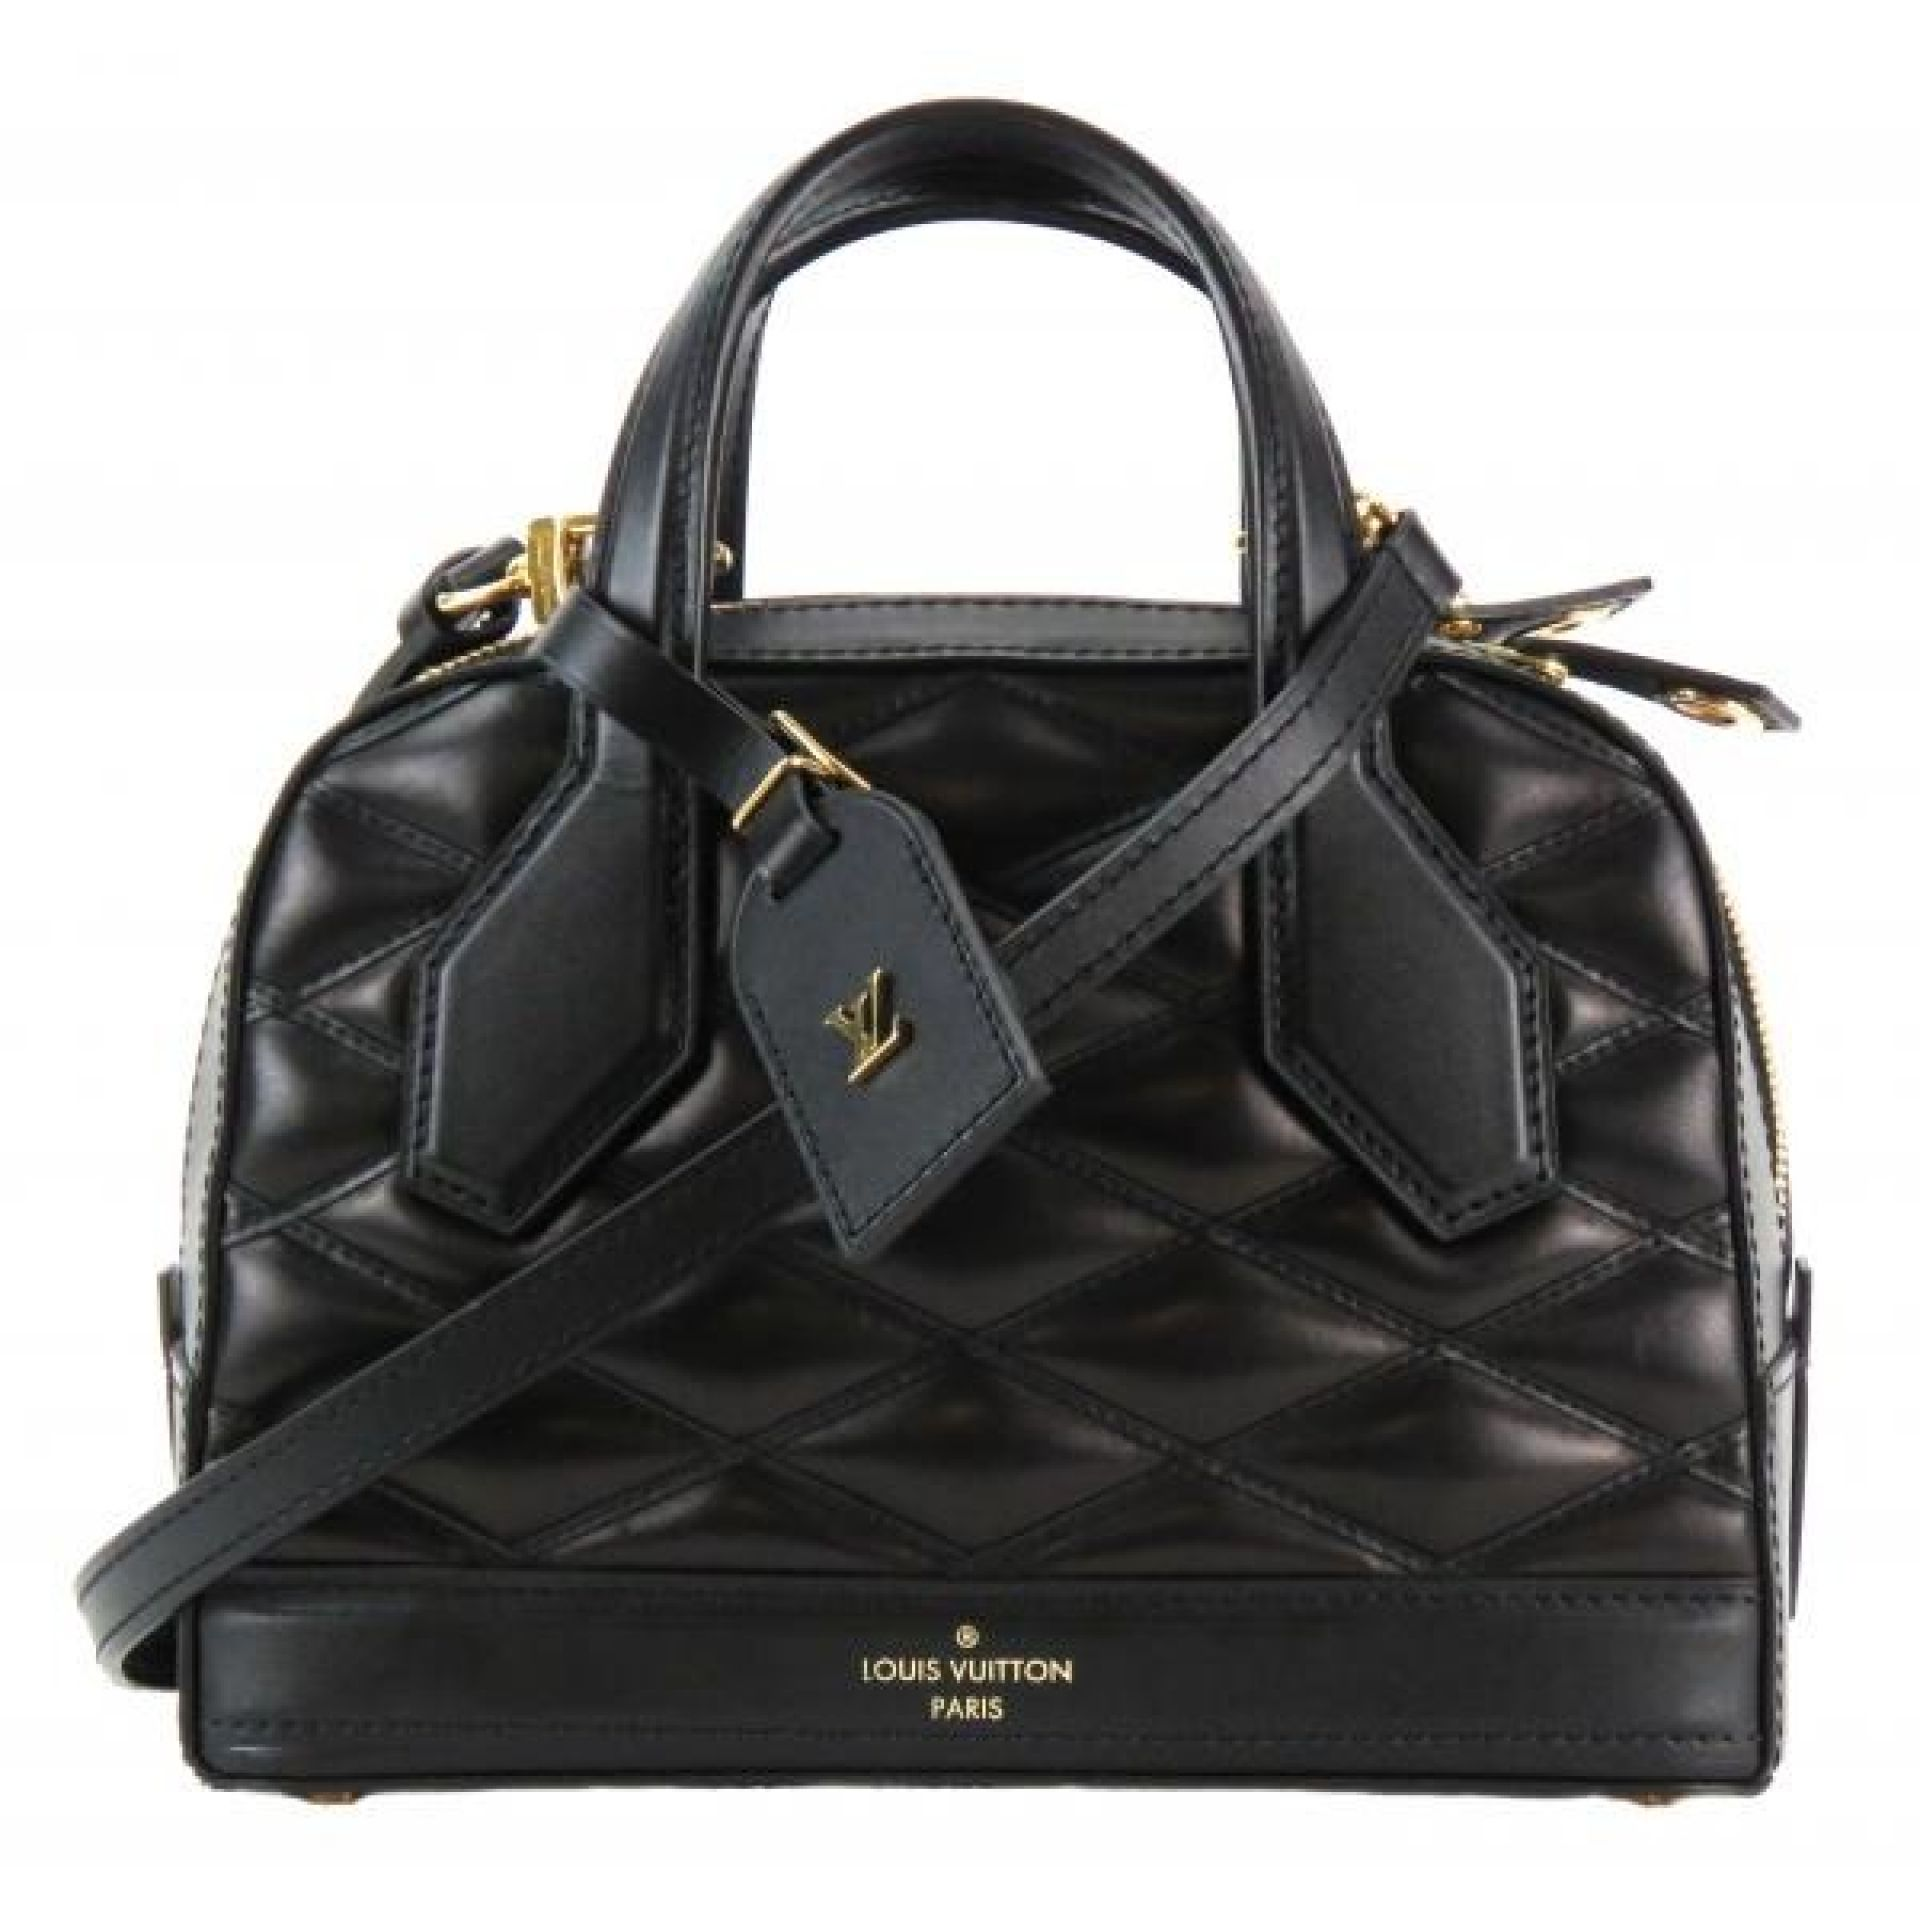 Louis Vuitton Black Quilted Leather Dora Malletage BB Satchel Bag